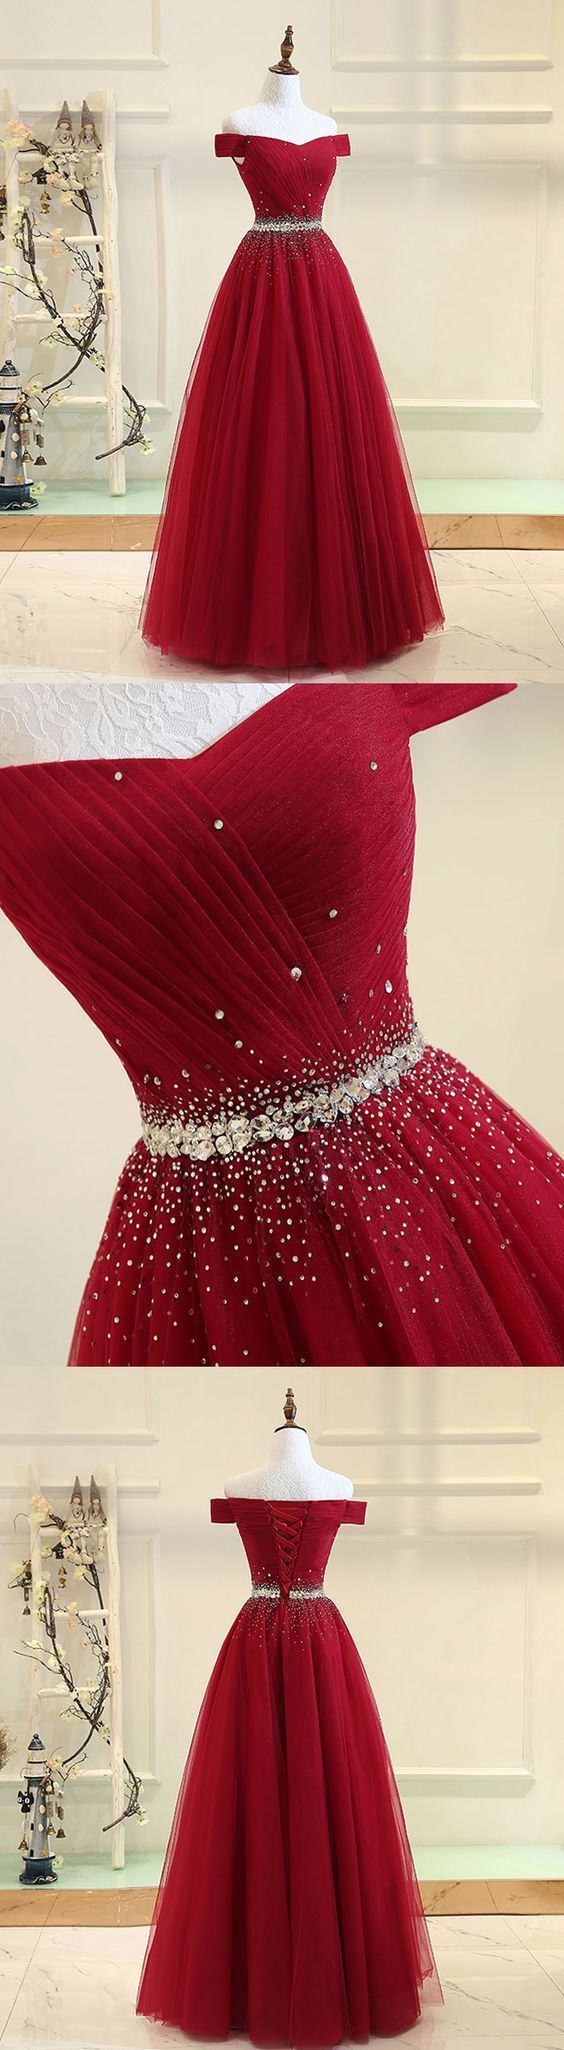 Burgundy tulle off shoulder long prom dress, burgundy evening dress M1204 #promdresseslong